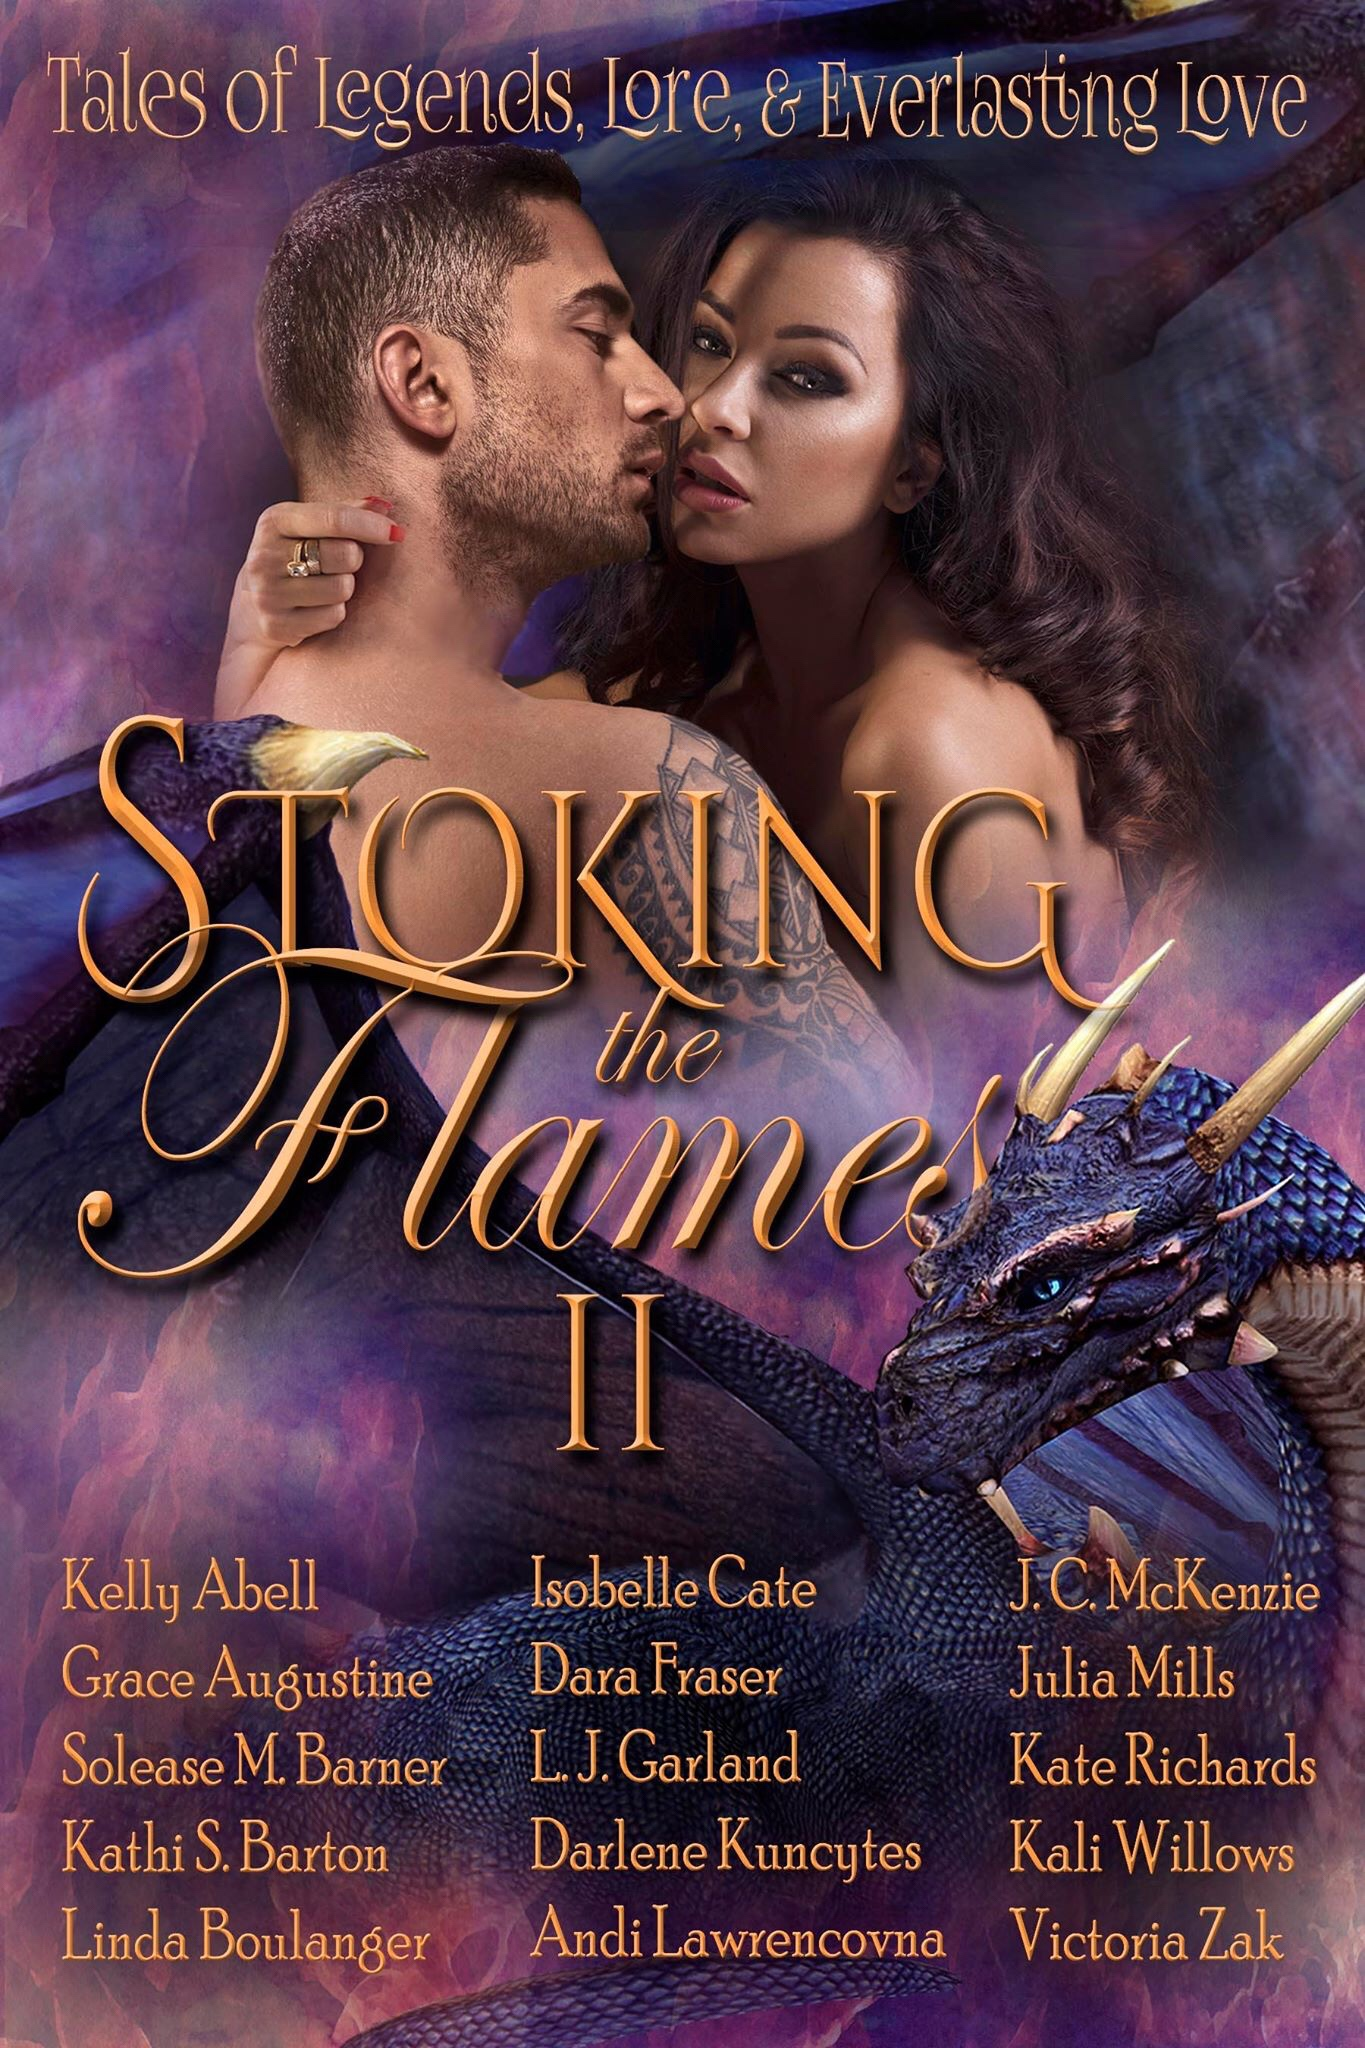 STOKING THE FLAMES II – ANTHOLOGY